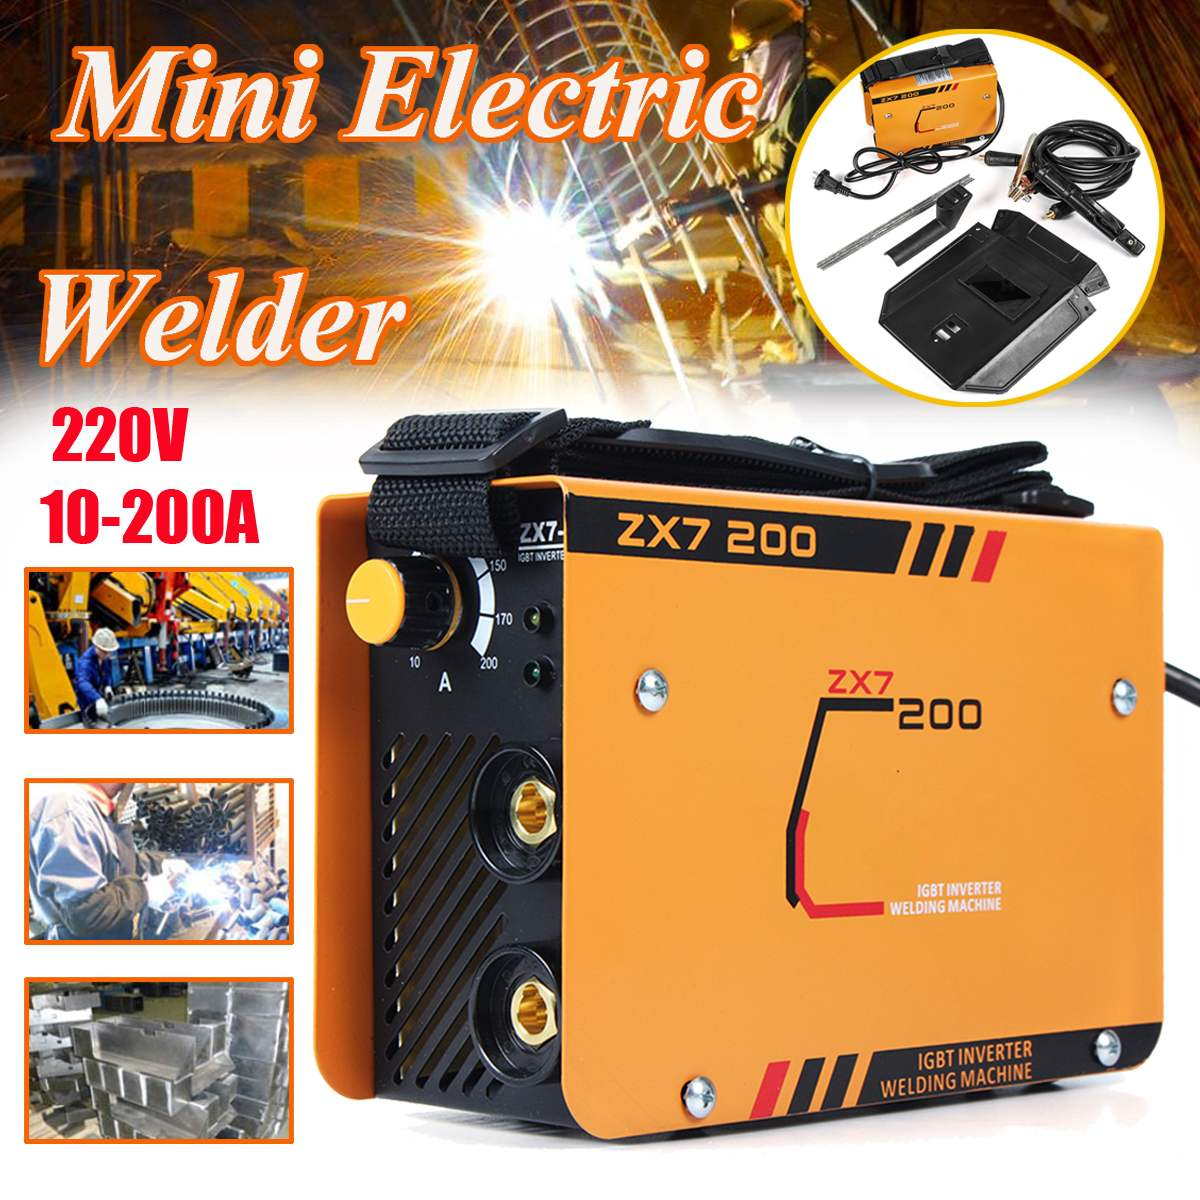 220V 10-200A Mini Electric Welding Machine ZX7-200MINI Arc Welder 2.5-3.2mm for Soldering and Electric Working Adjustable portable arc welder household inverter high quality mini electric welding machine 200 amp 220v for household